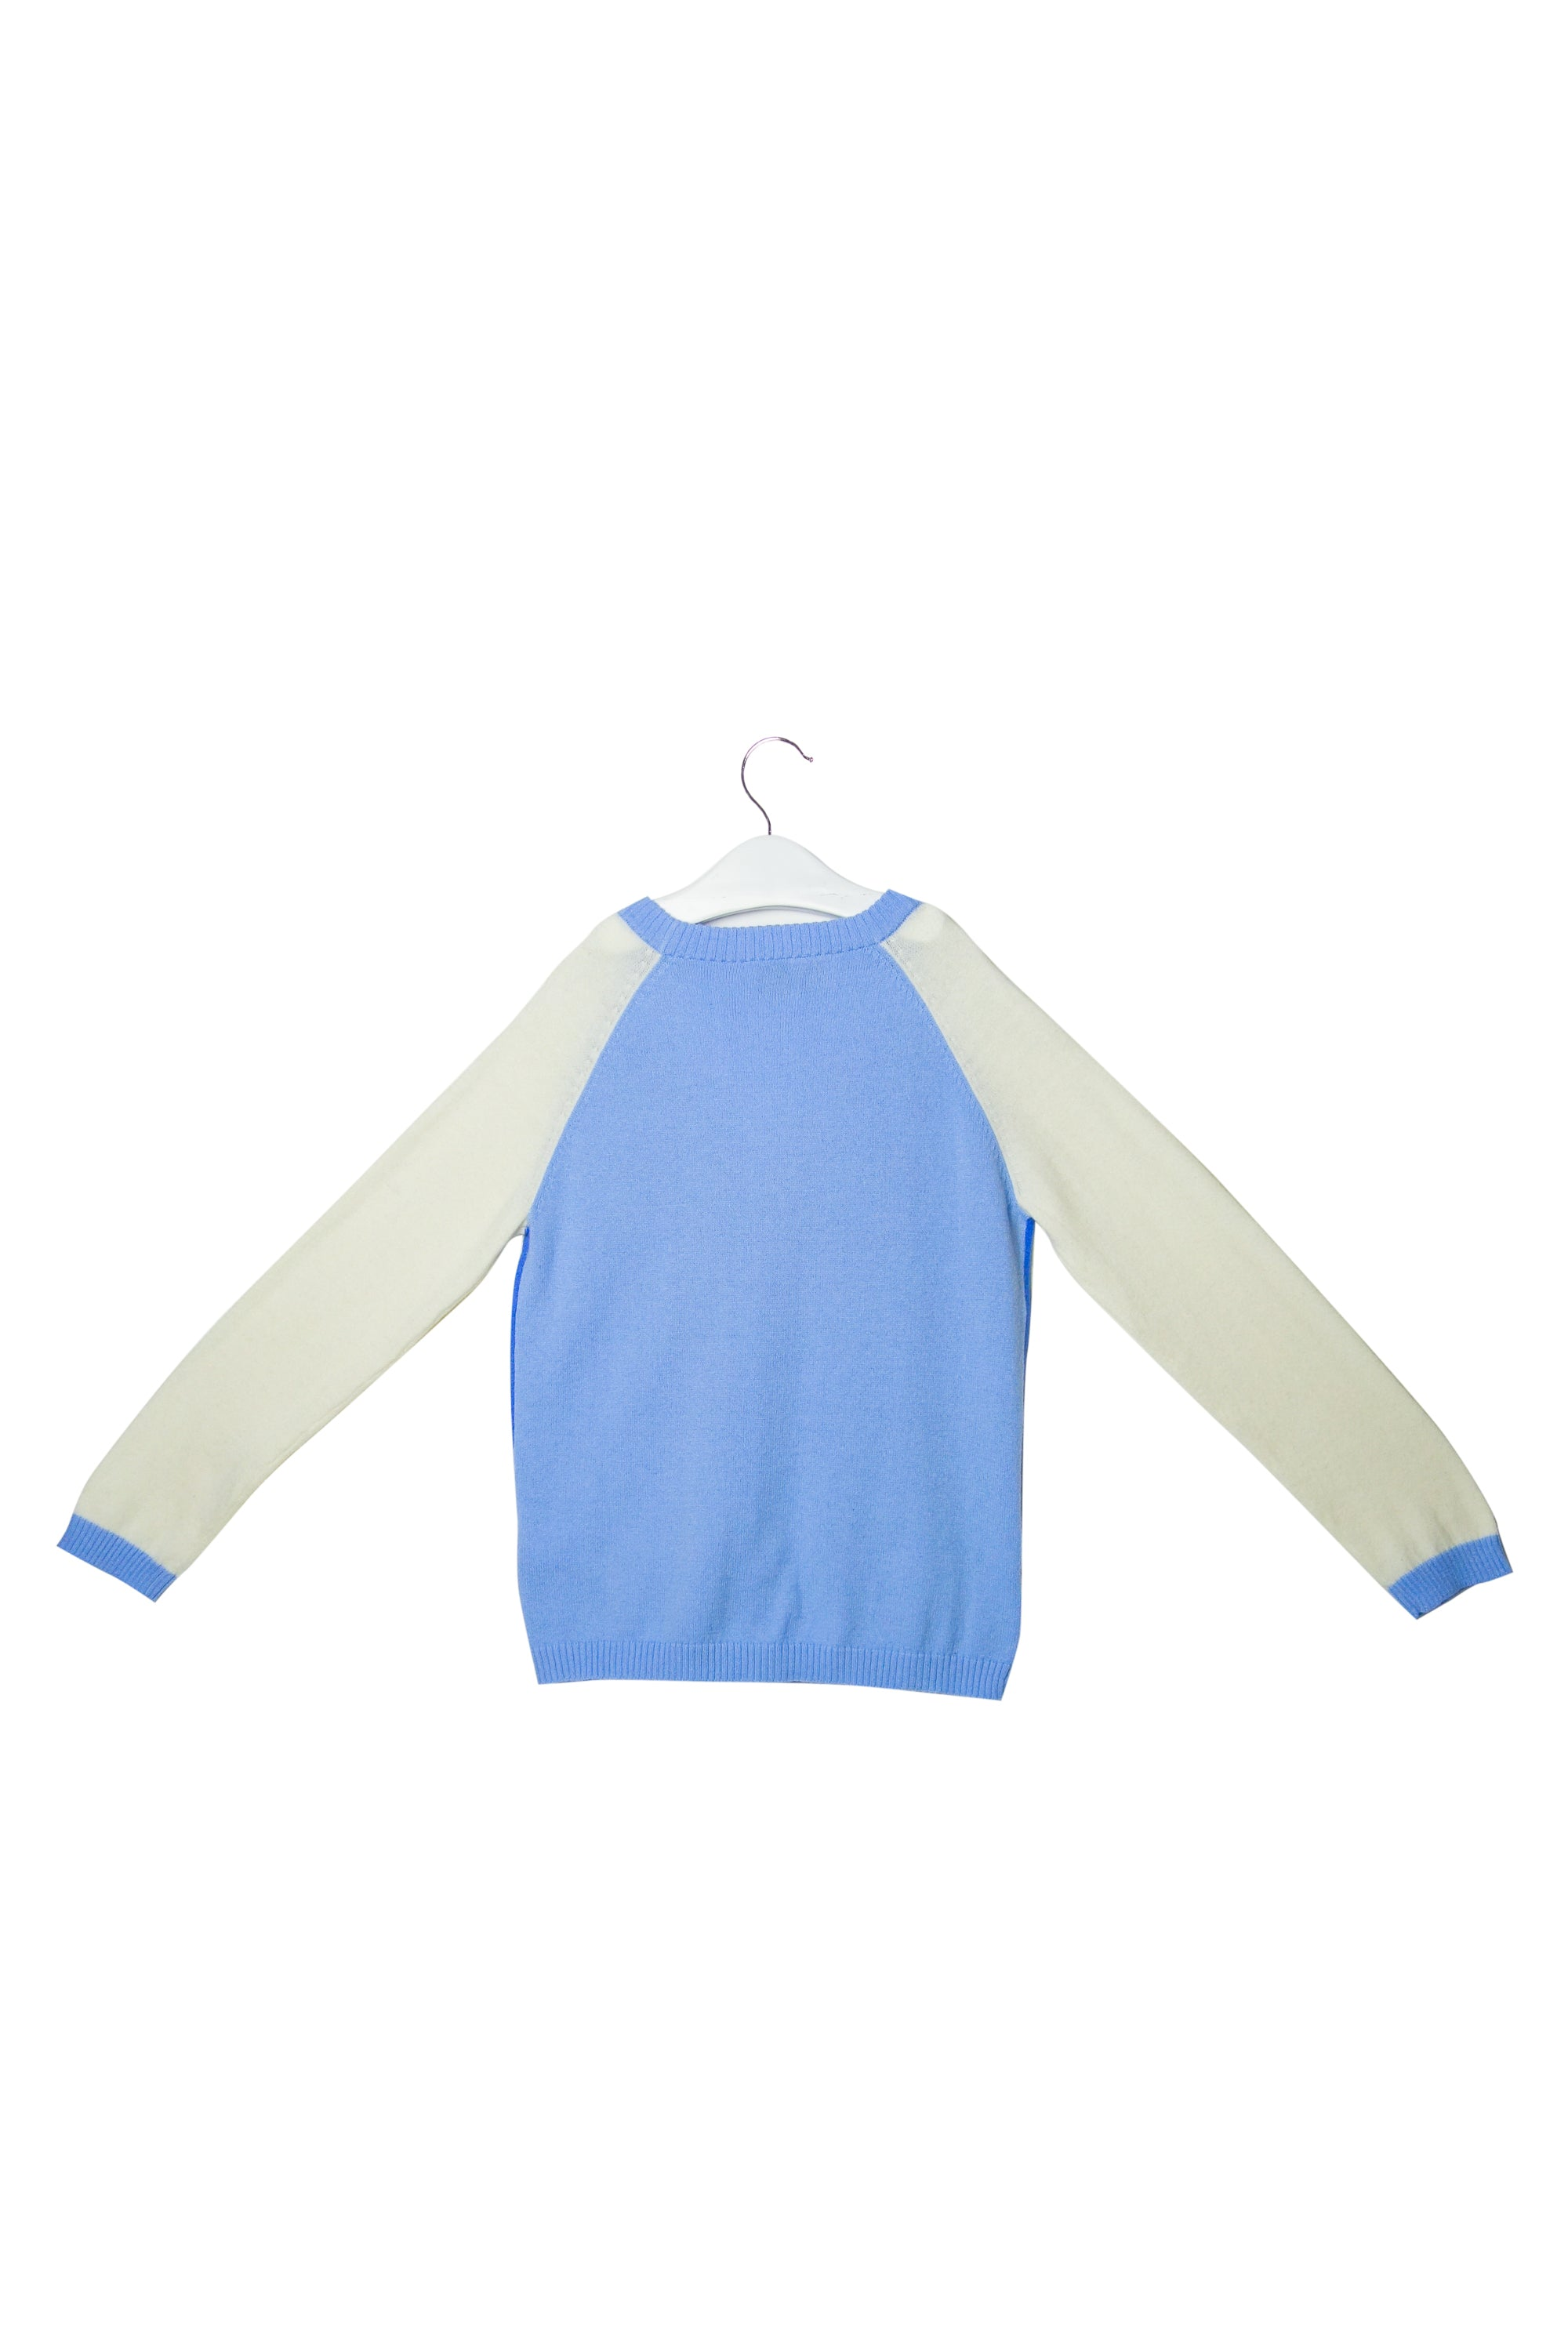 10002848 Atelier/Child Kids~Cardigan 6-7 at Retykle